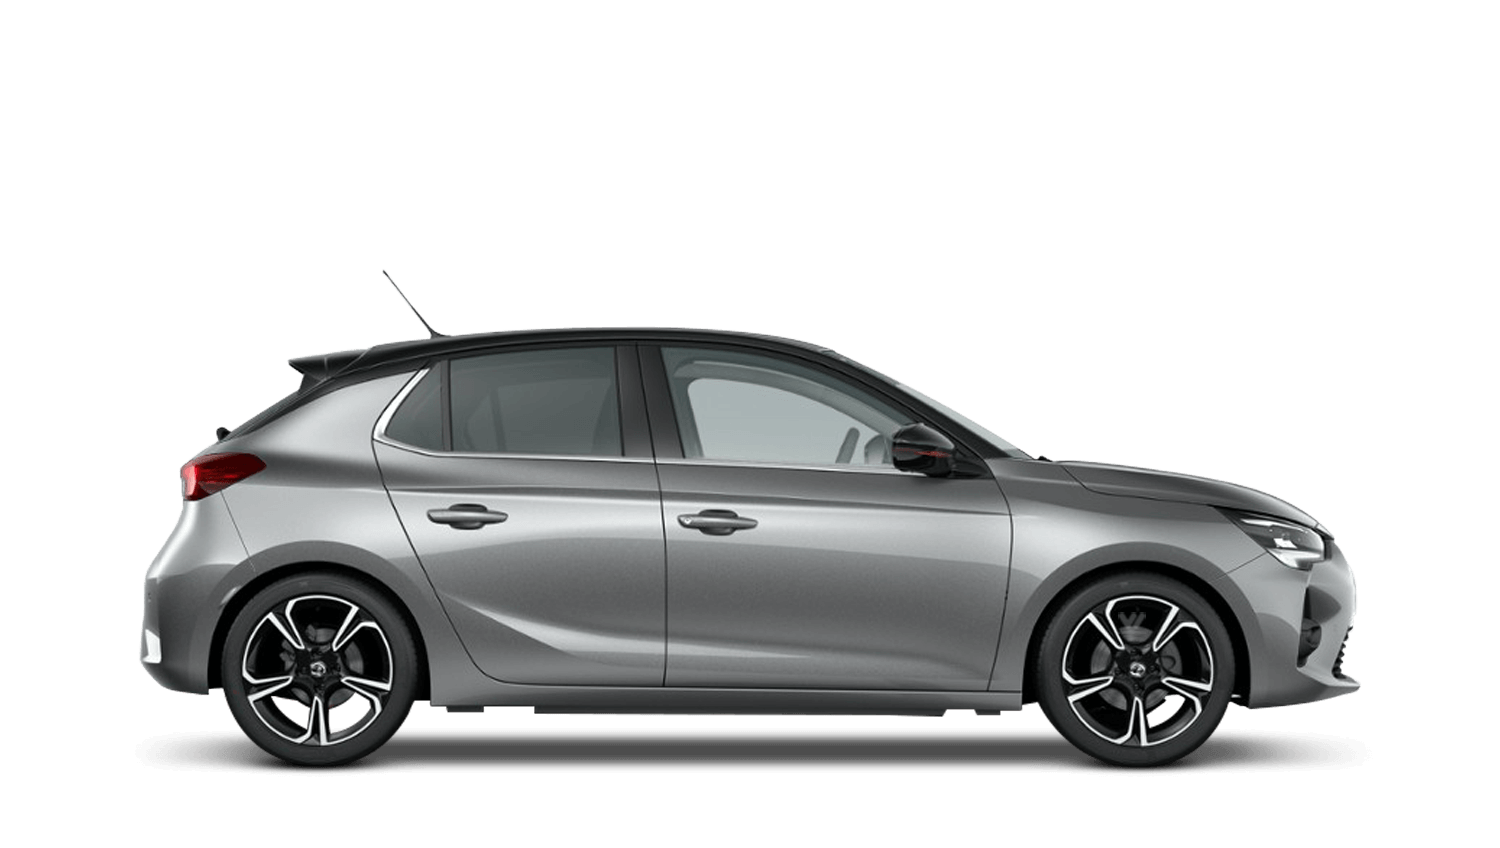 Quartz Grey (Metallic) All-New Vauxhall Corsa